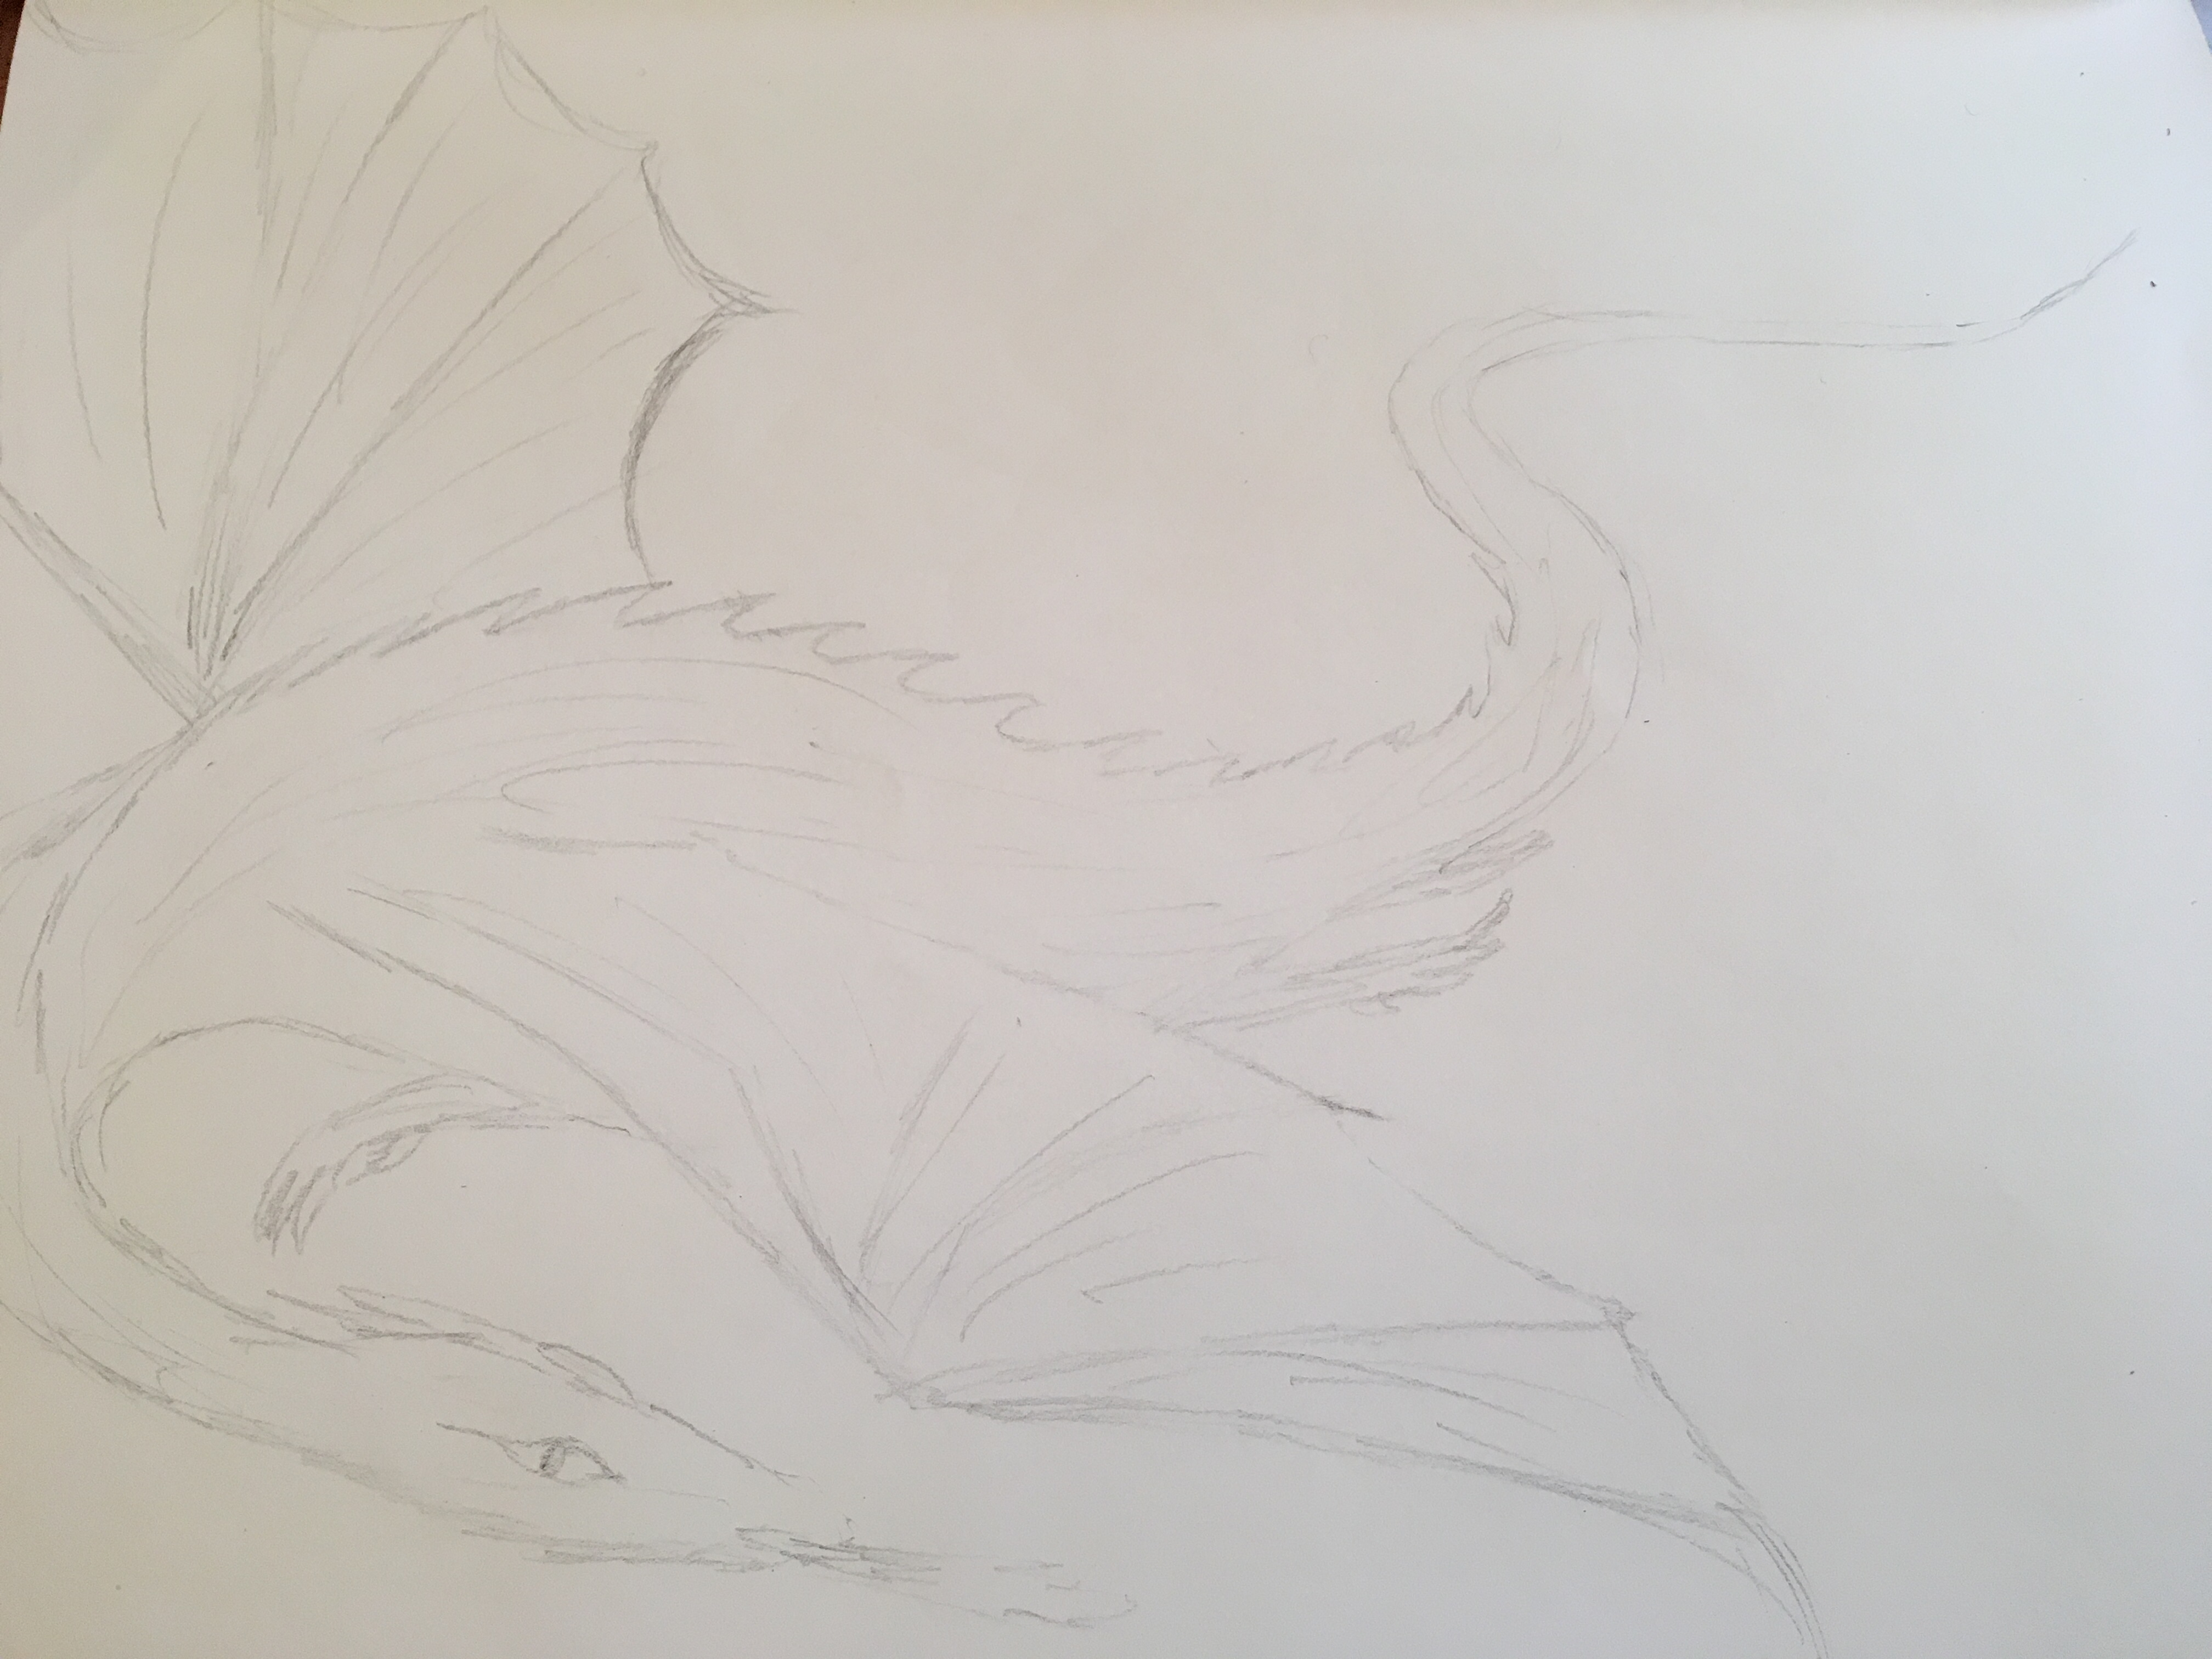 Dragon in pencil large realistic